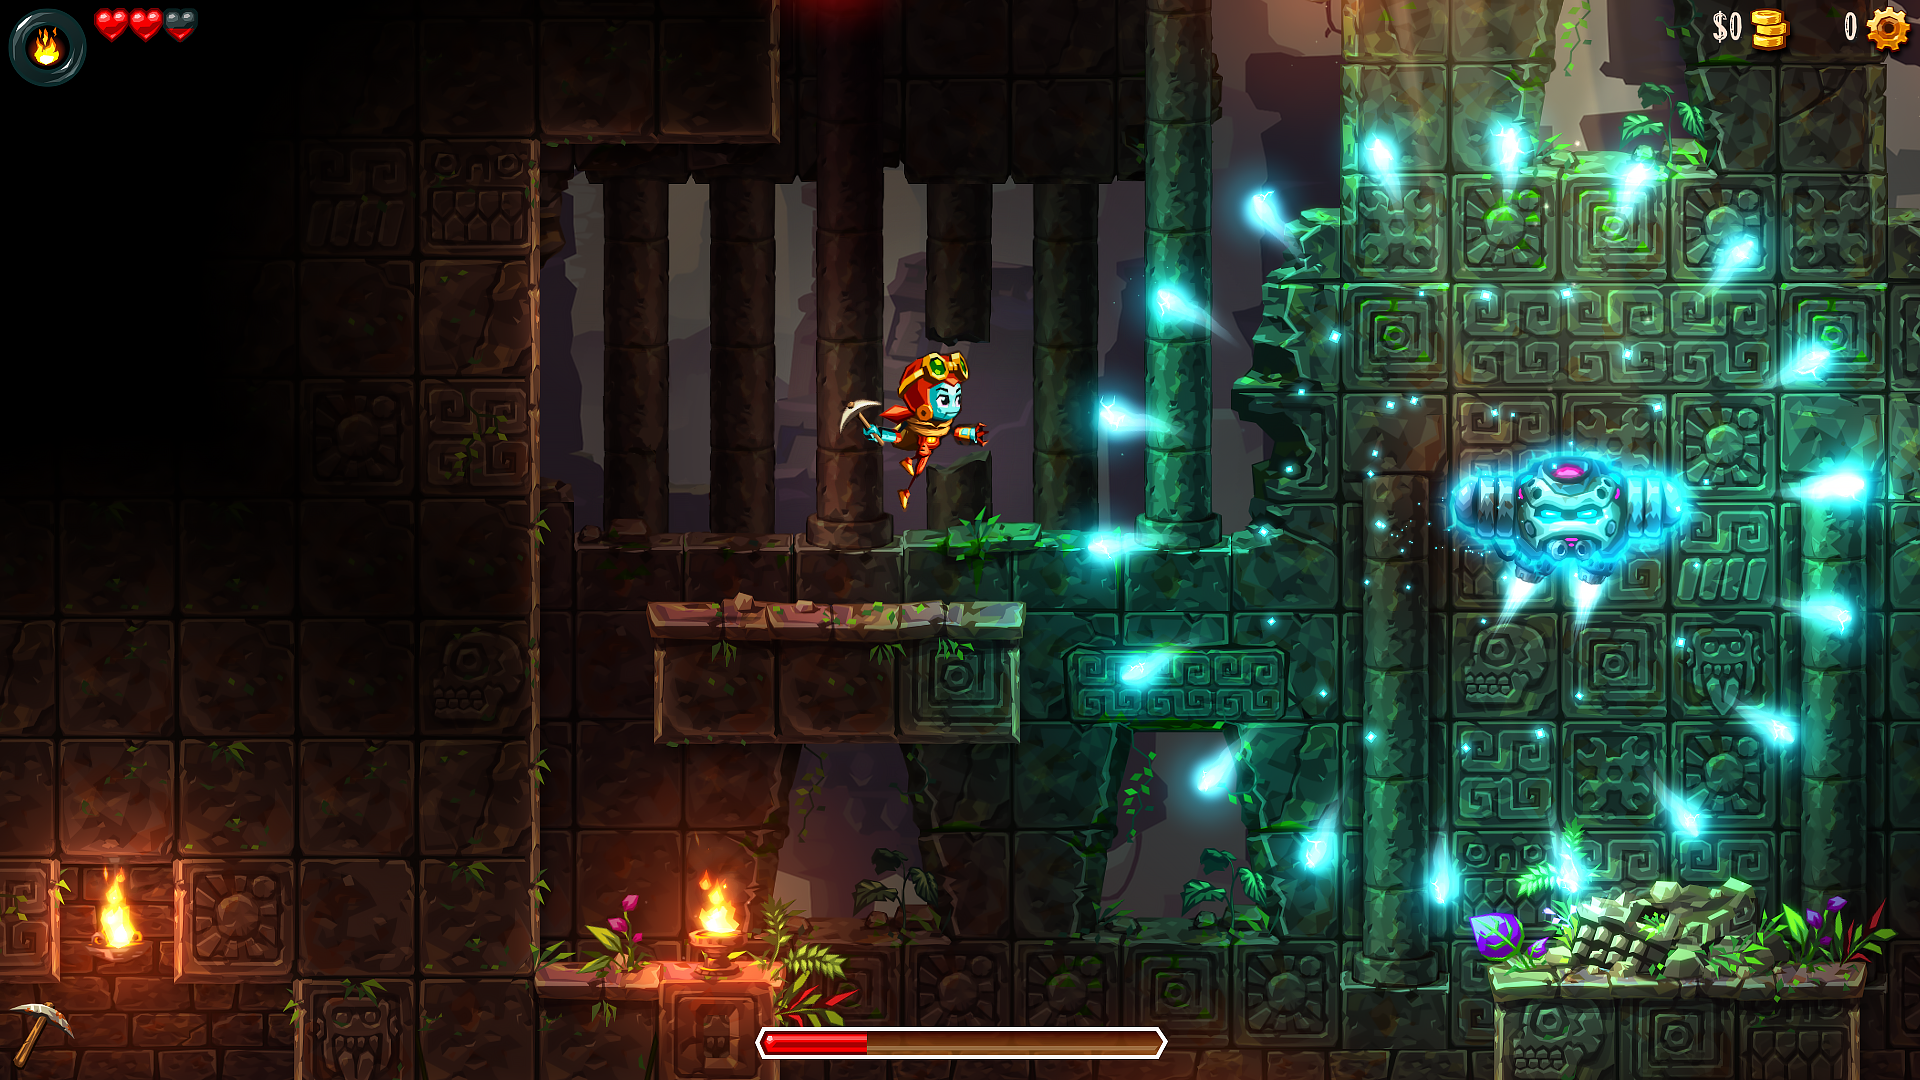 SteamWorld-Dig-2-Screenshot-4.png